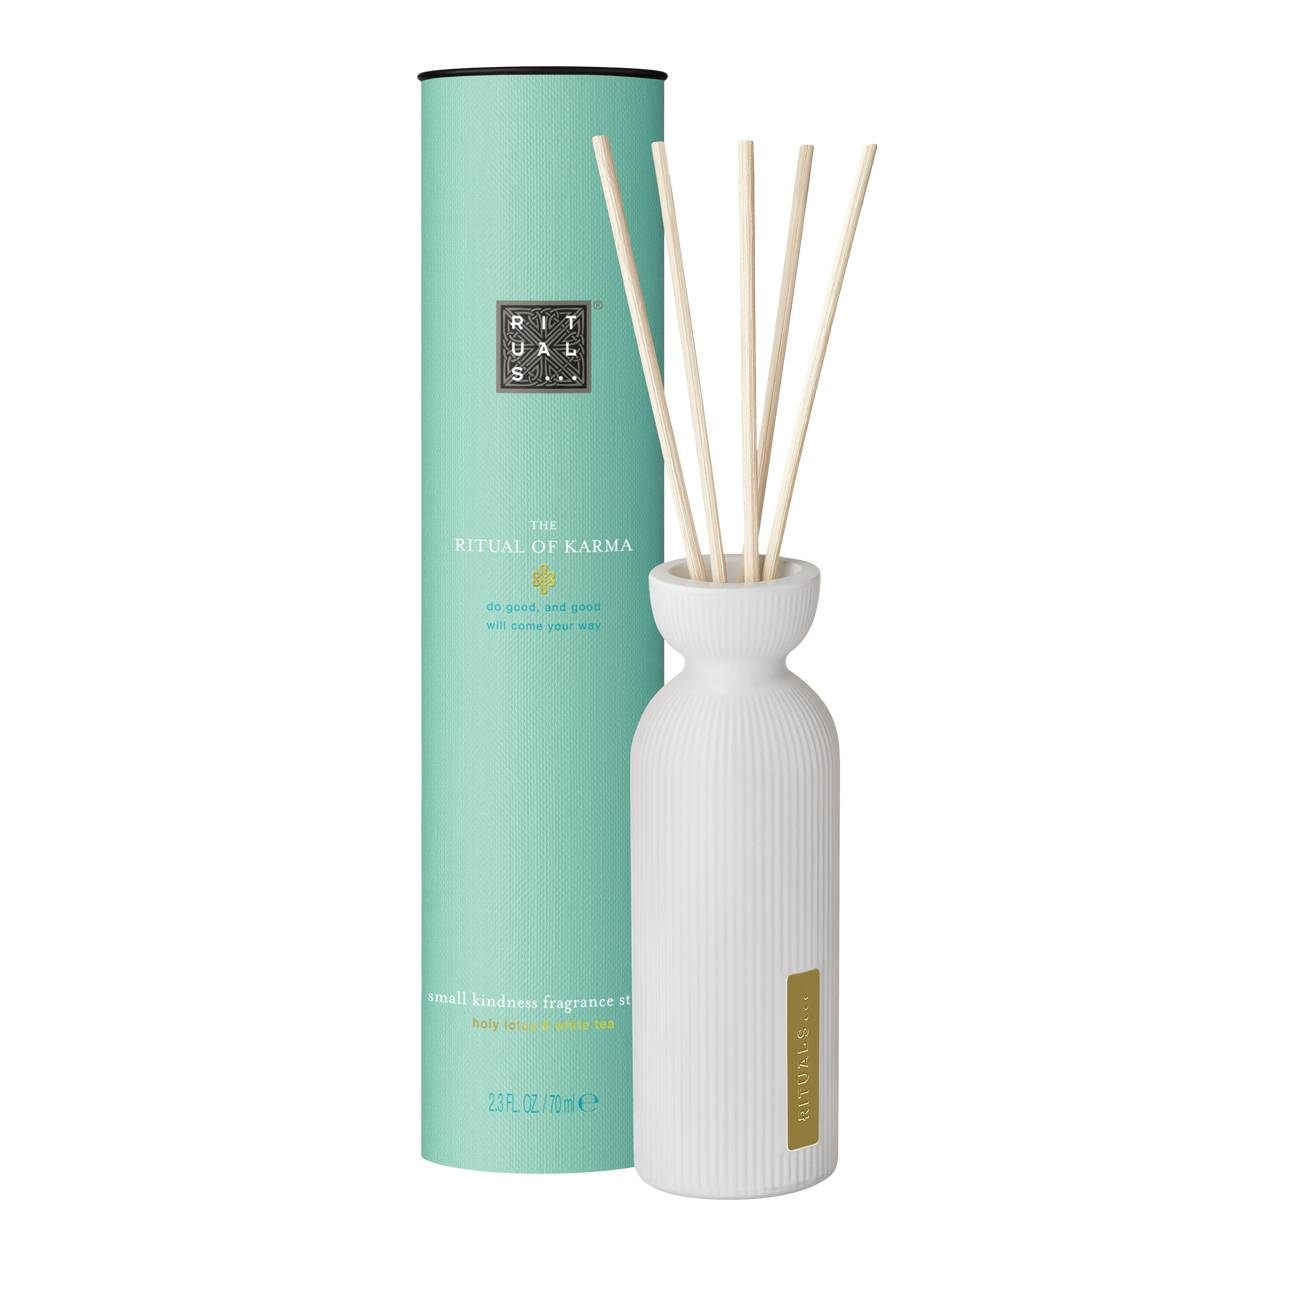 Karma Mini Fragrance Sticks 70 Ml Rituals imagine 2021 bestvalue.eu